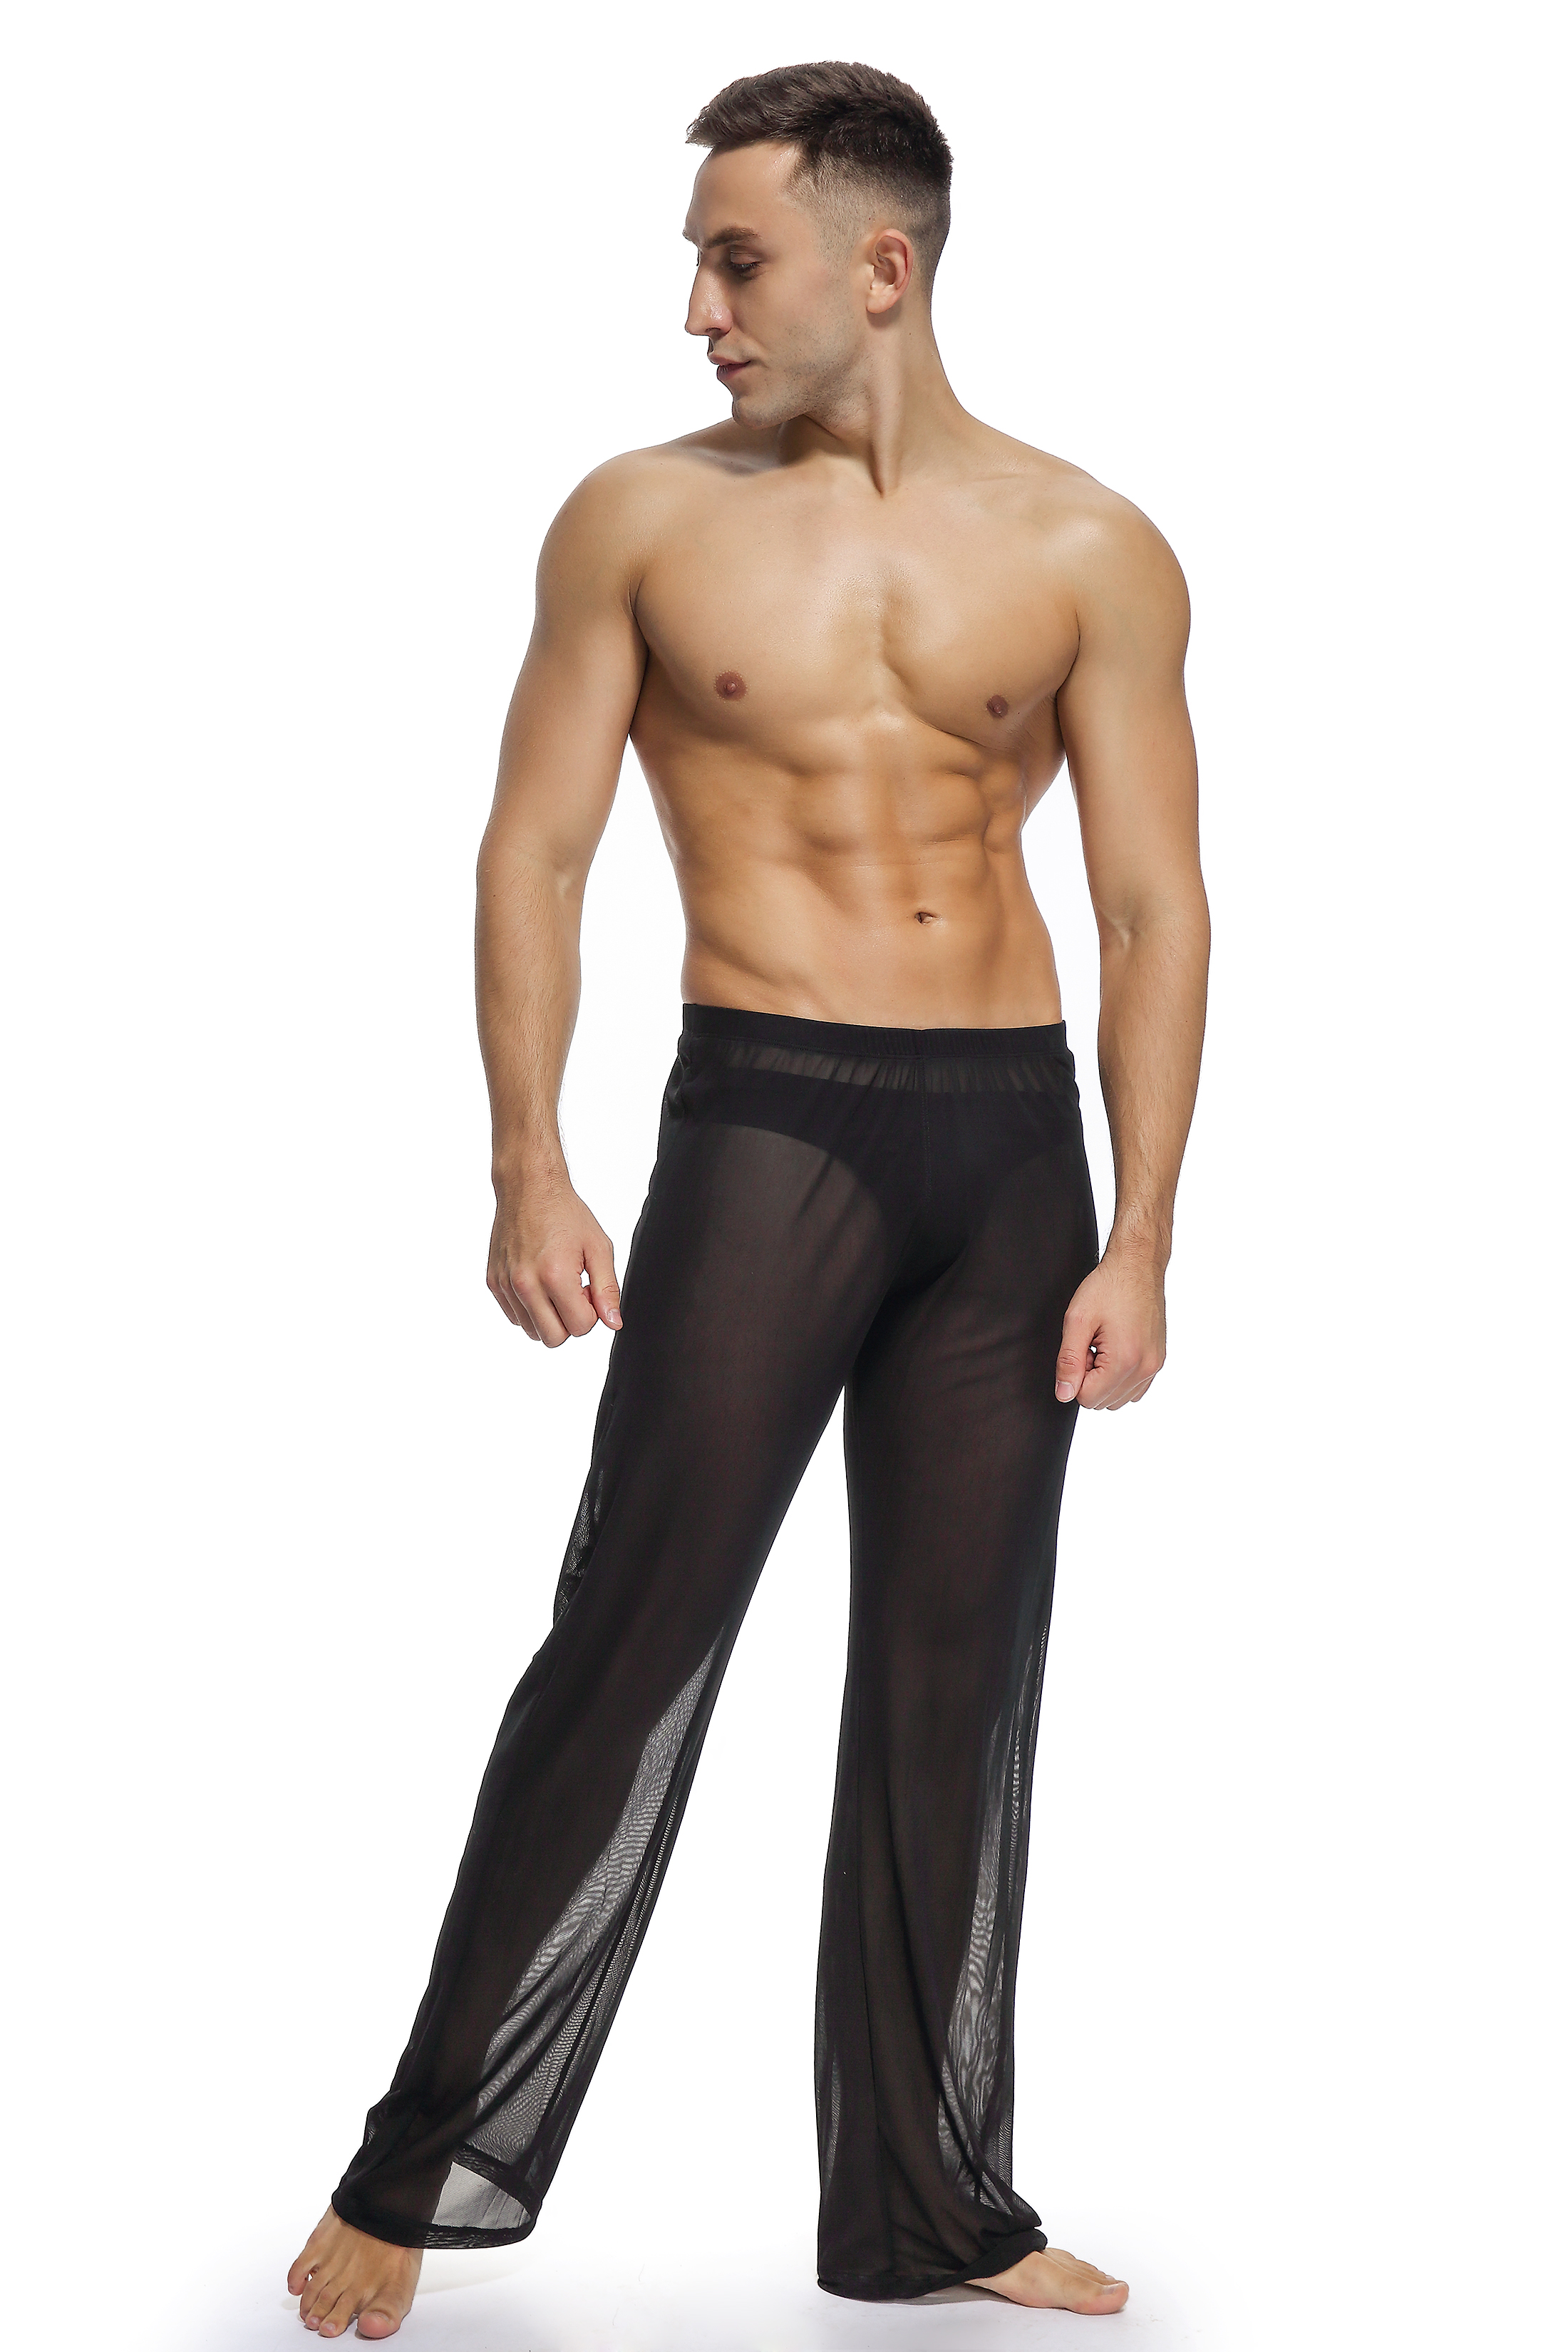 Male sex lounge pants transparent clothes customize morning pants rubber band fitness trousers summer thin